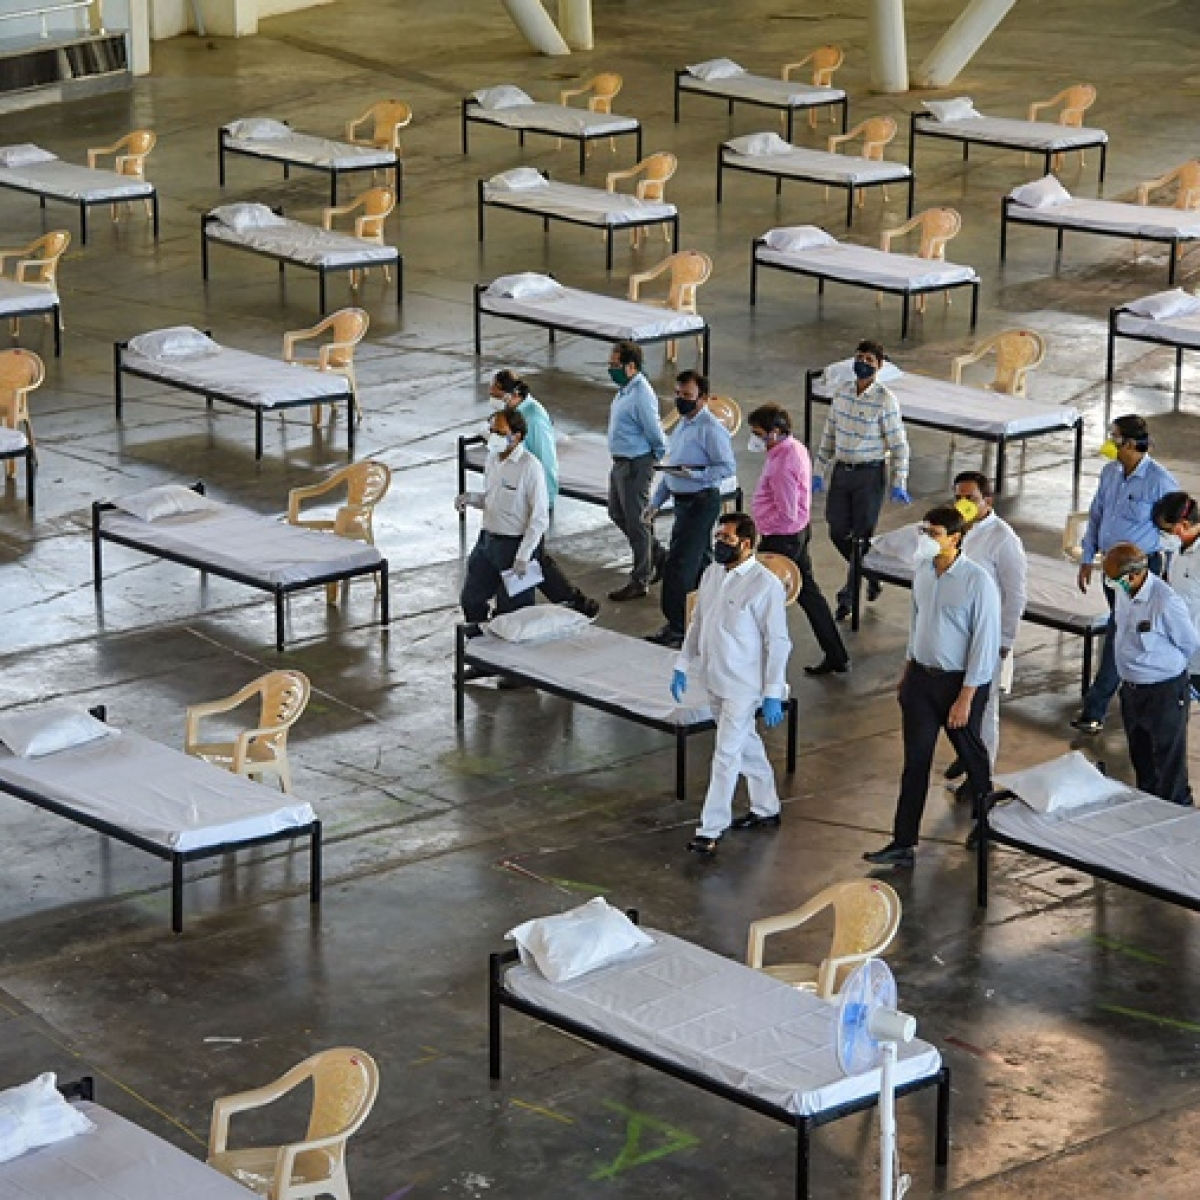 Coronavirus in Mumbai: Beds availability reduced to 31% from 50% in last 20 days